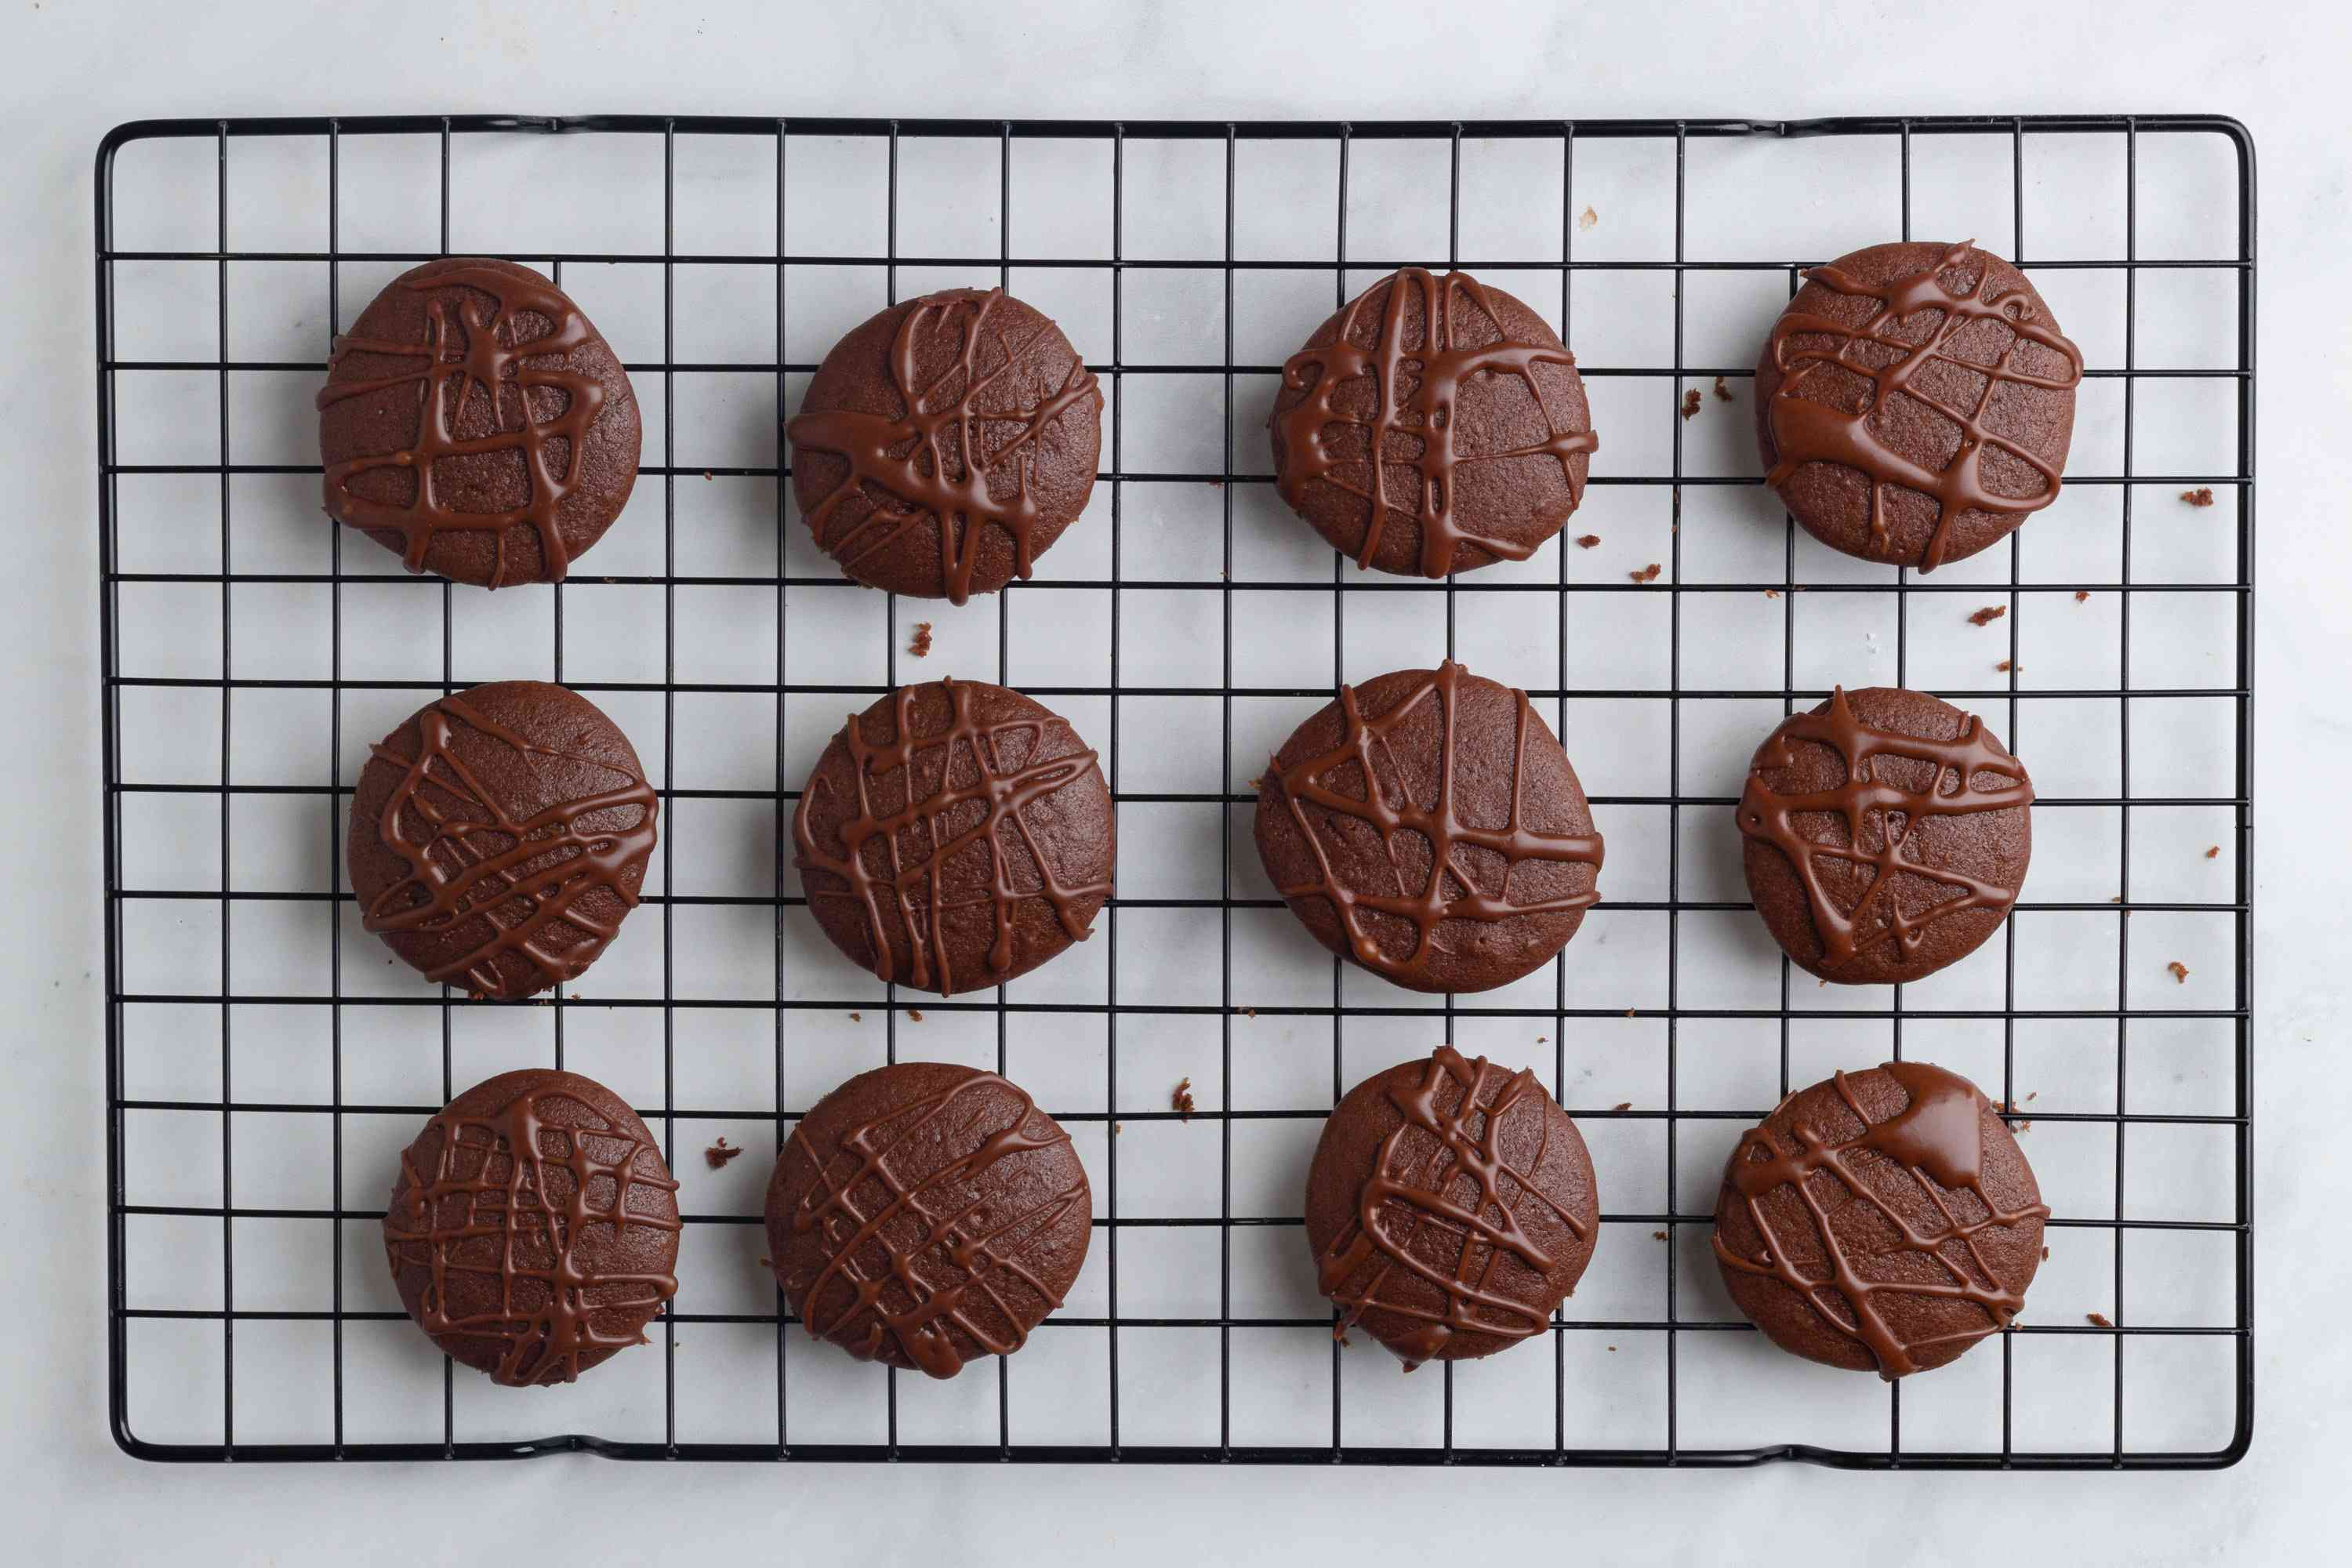 Chocolate Cookies With Mocha Glaze on a cooling rack